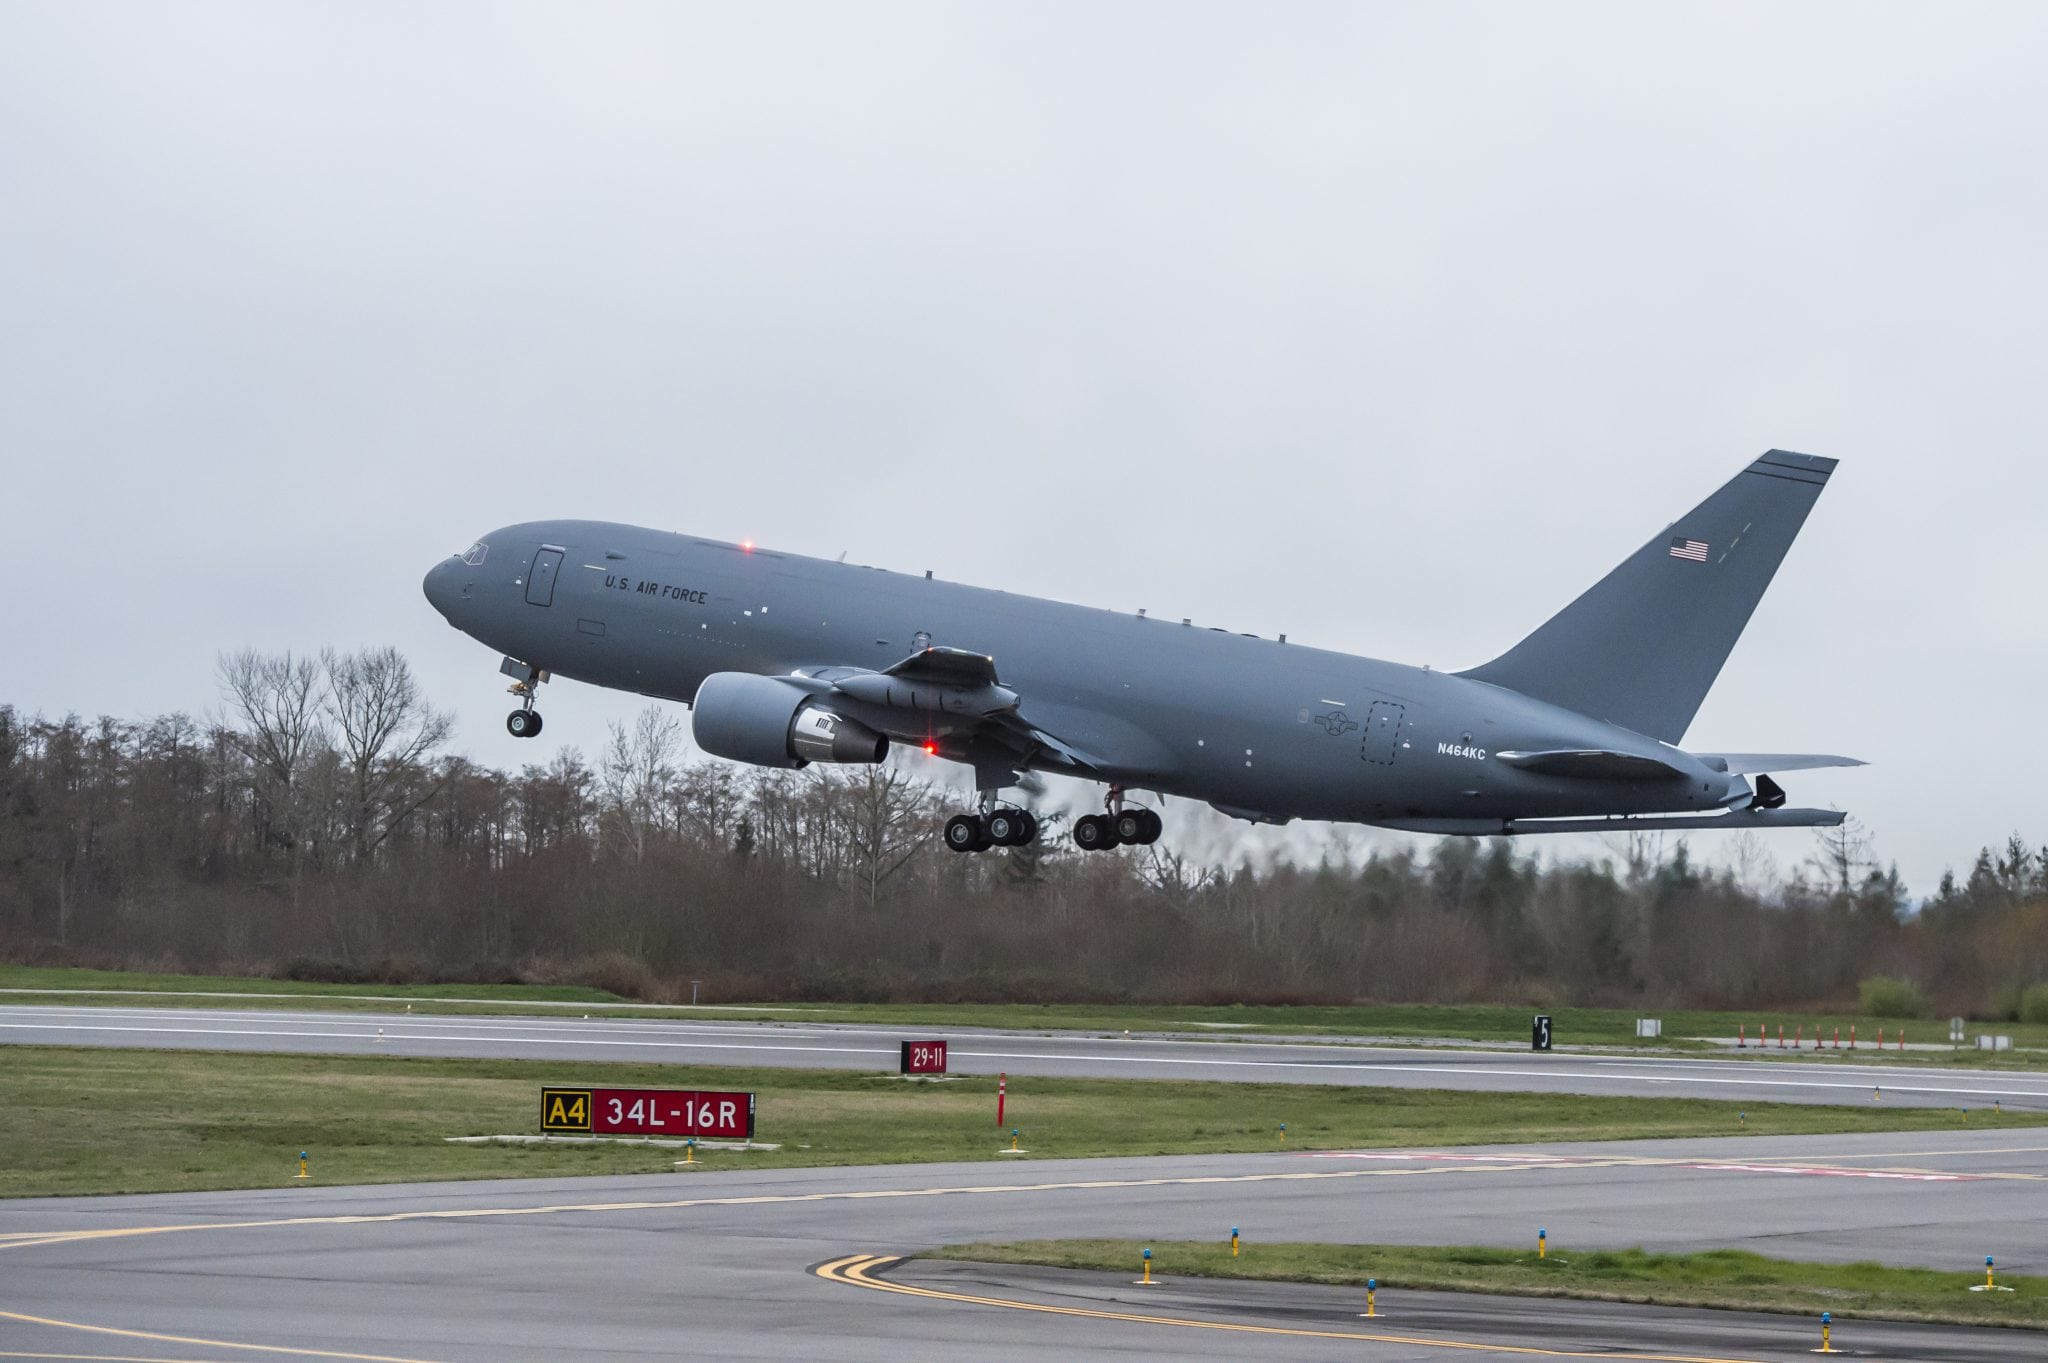 Boeing's second KC-46 tanker (EMD-4) takes off from Paine Field in Everett on its first flight